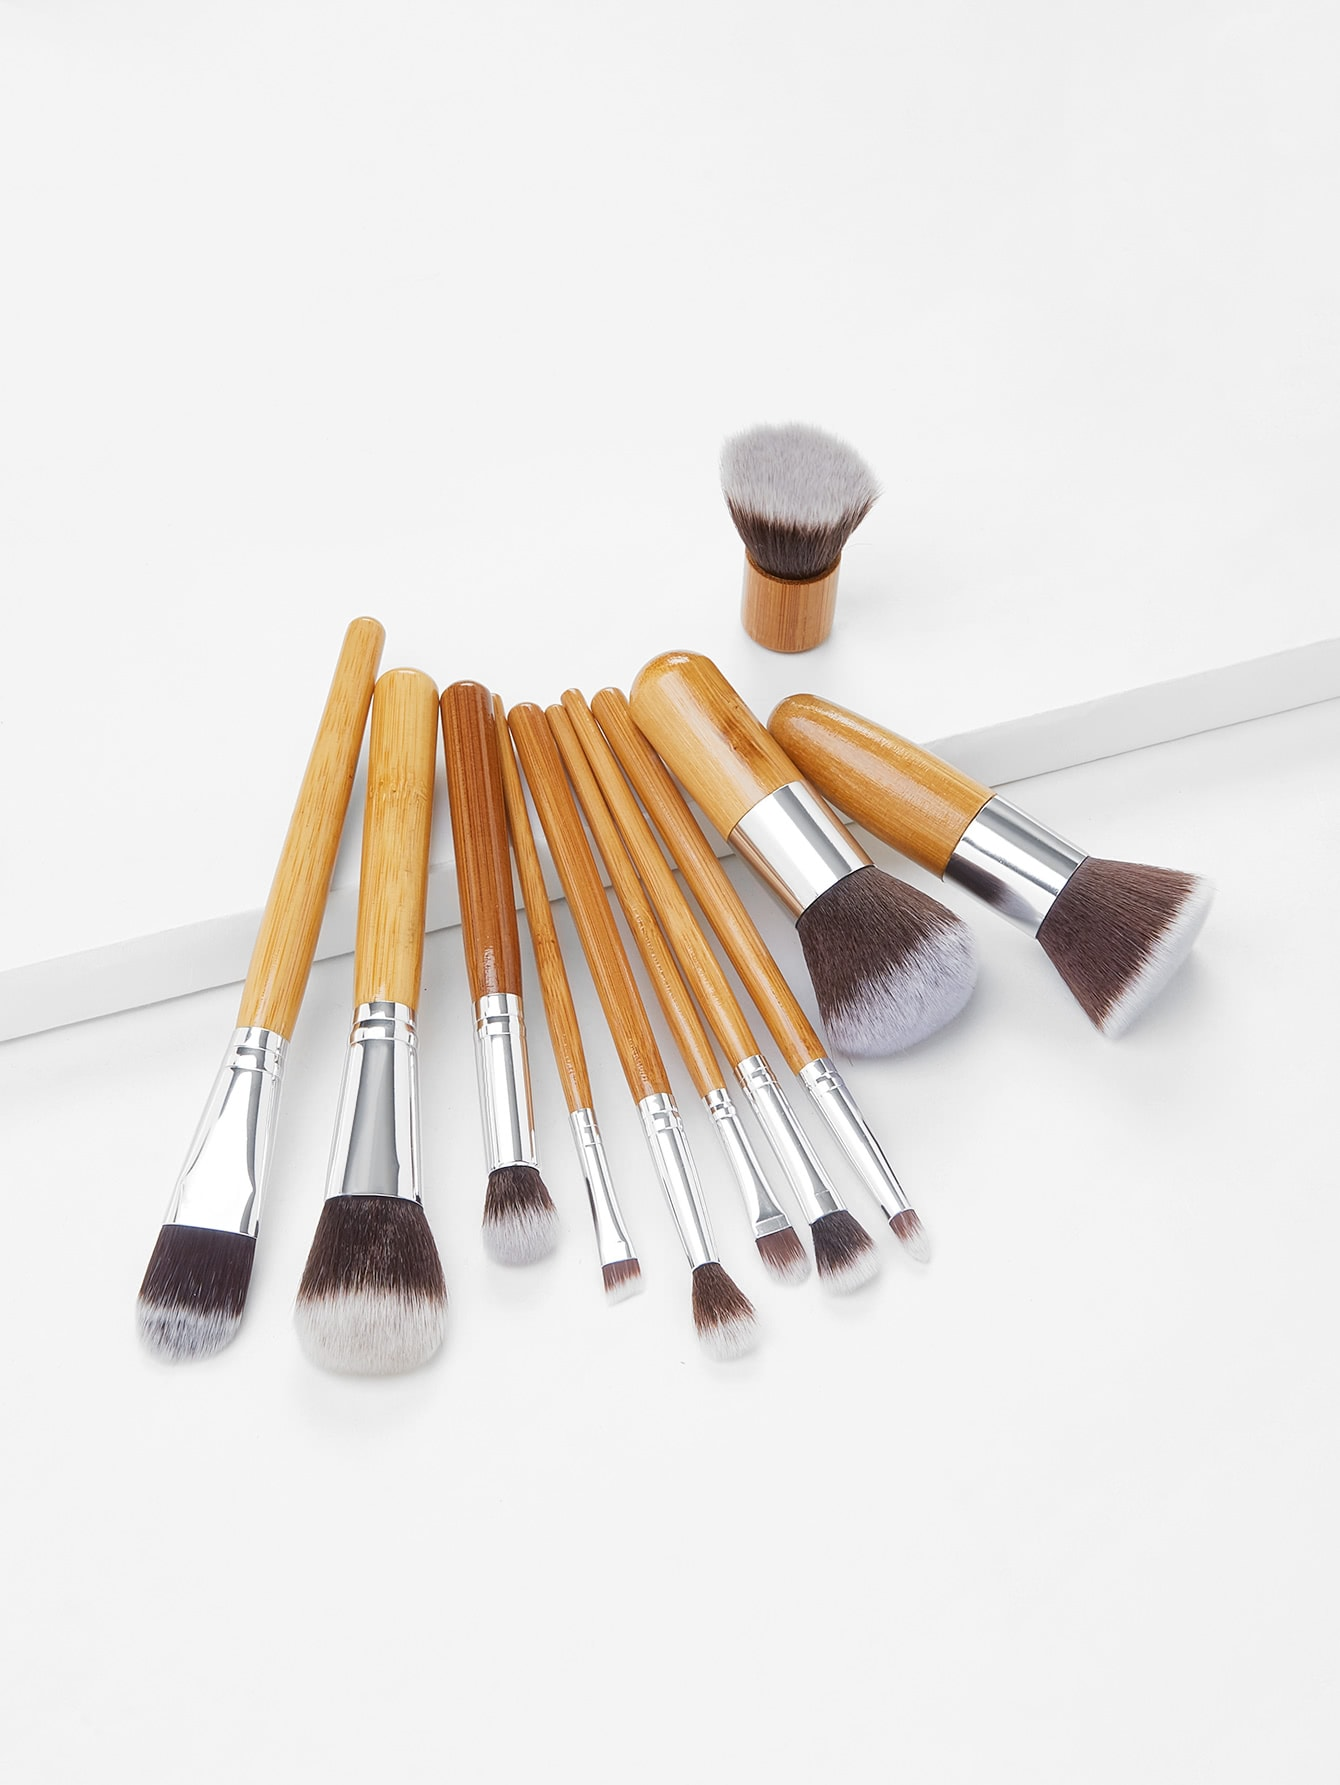 11 Pcs Bamboo Makeup Foundation Fiber Liner Eyeshadow Cosmetic Brush Set Bag Kit hot sale 2016 soft beauty woolen 24 pcs cosmetic kit makeup brush set tools make up make up brush with case drop shipping 31